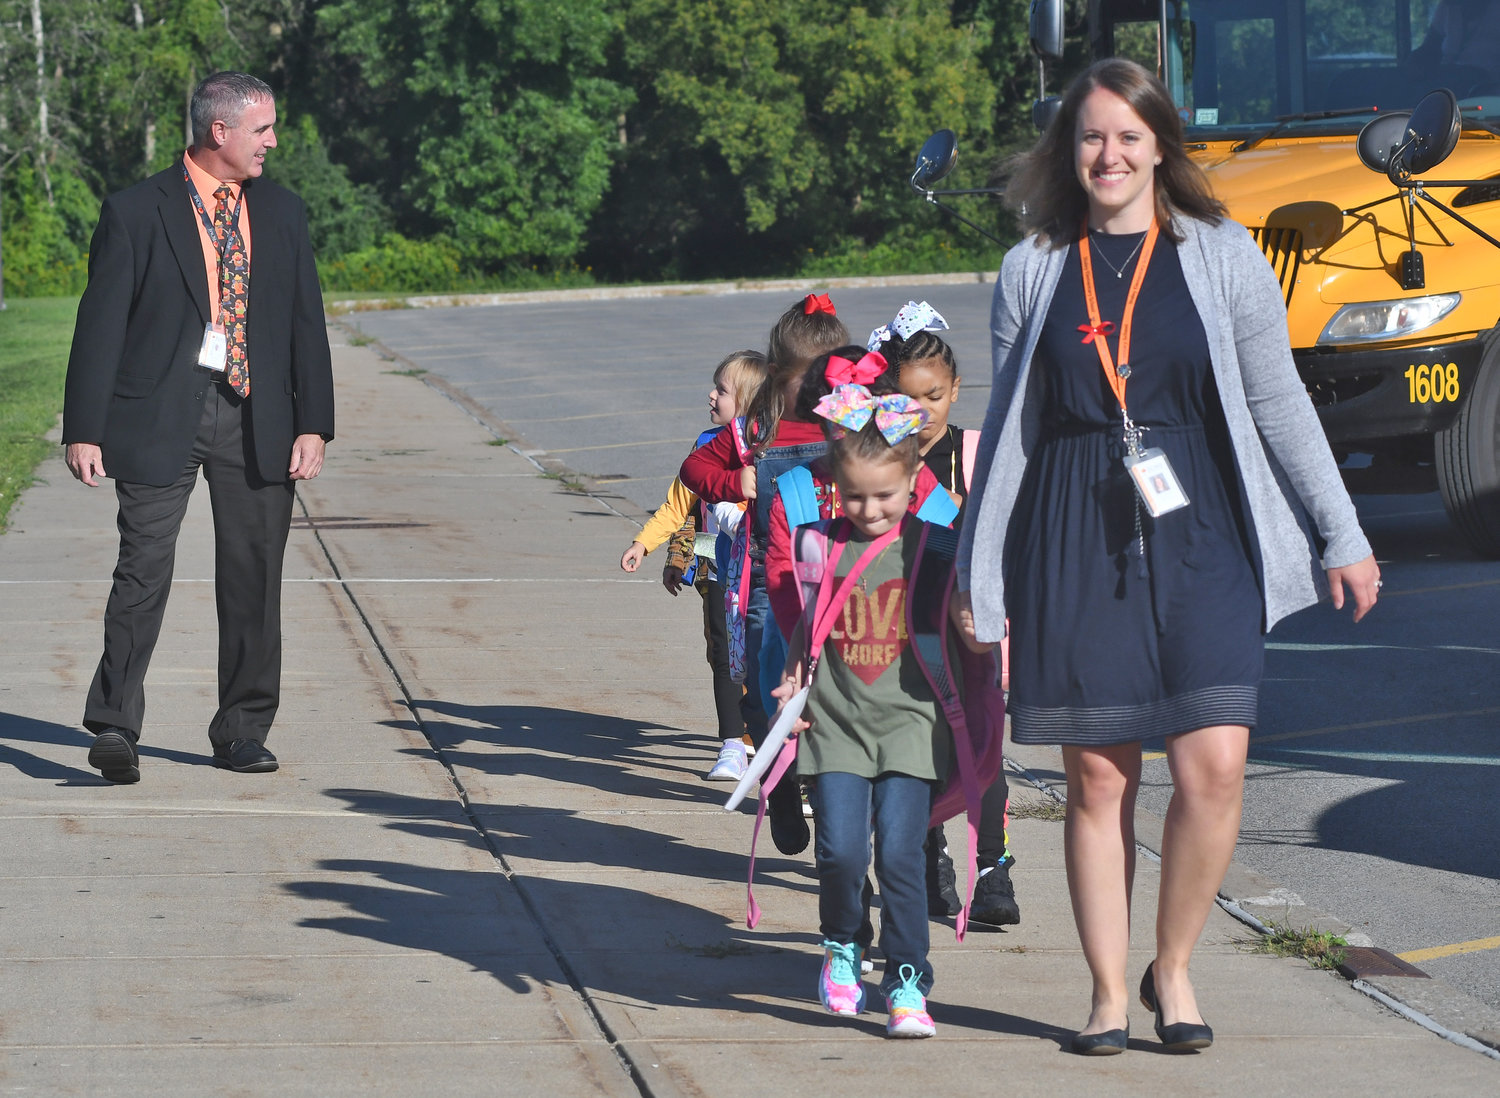 Mackenzie Welter leads her children to the school after they derparted the buses with new Staley principal talking to one of her students.